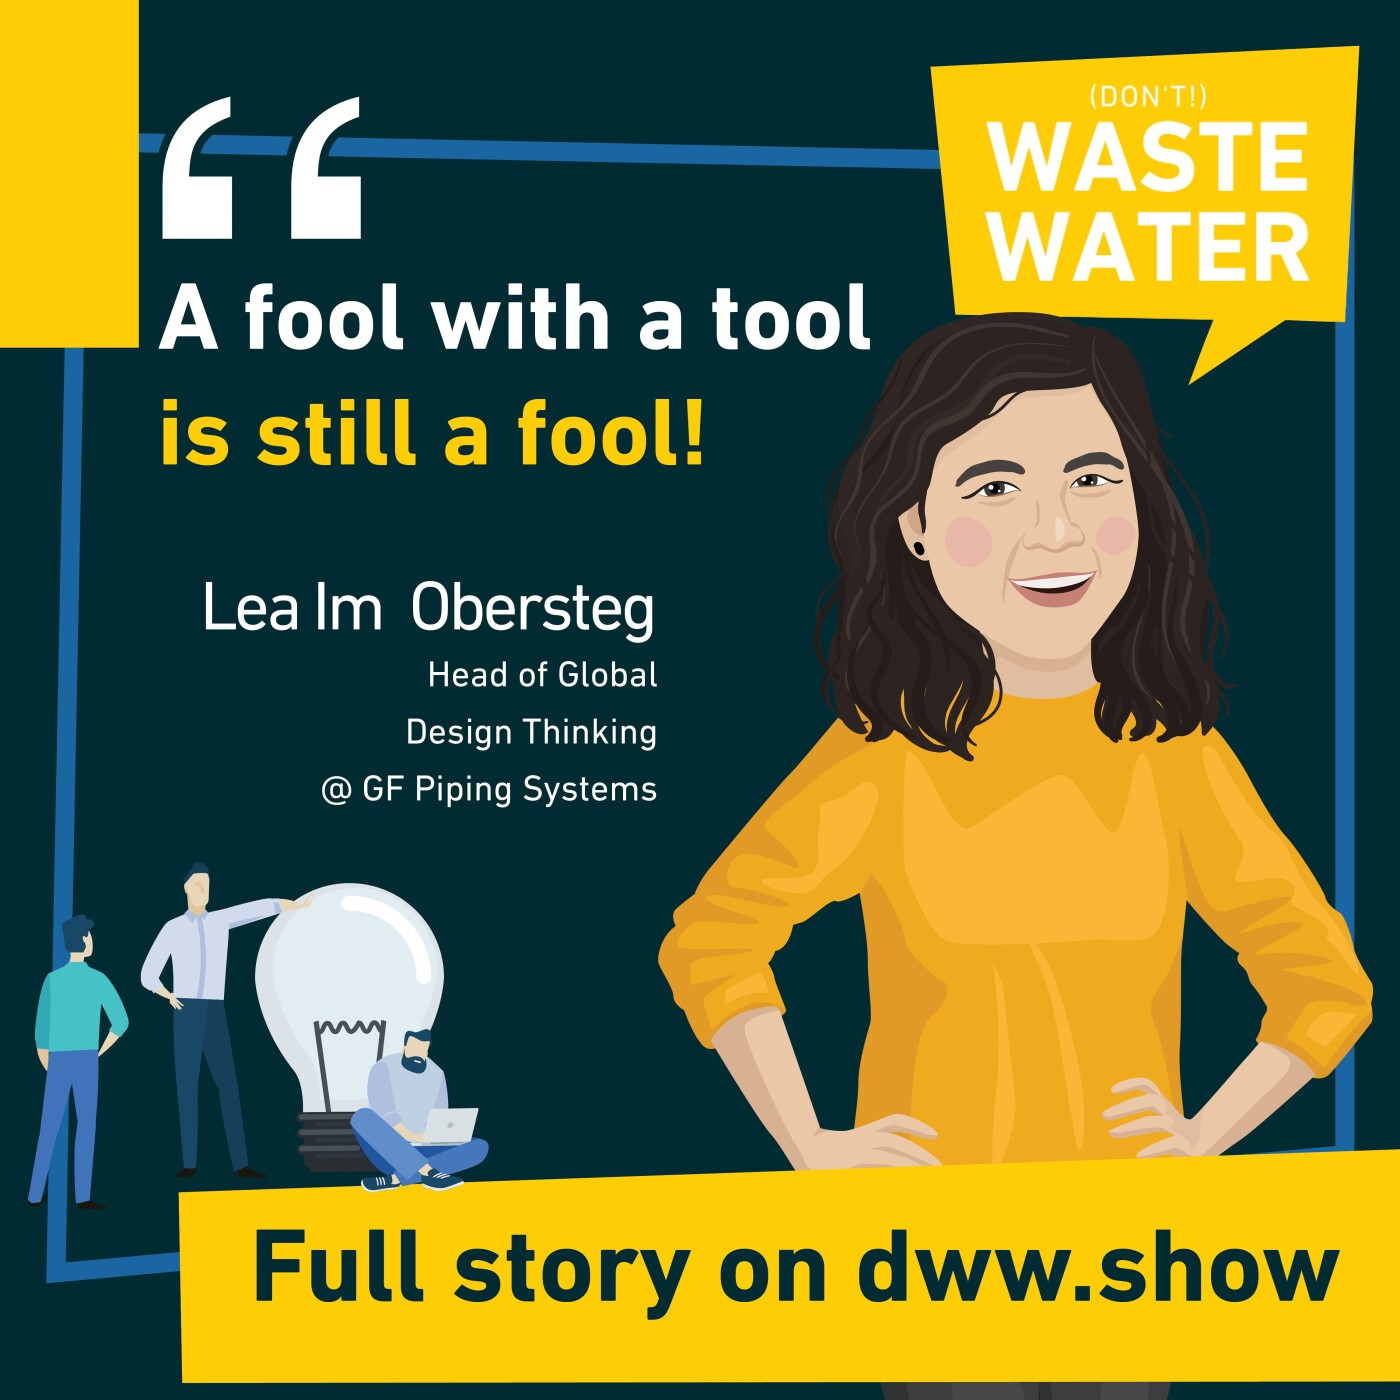 [Extract] A Fool with a Tool is still a Fool!